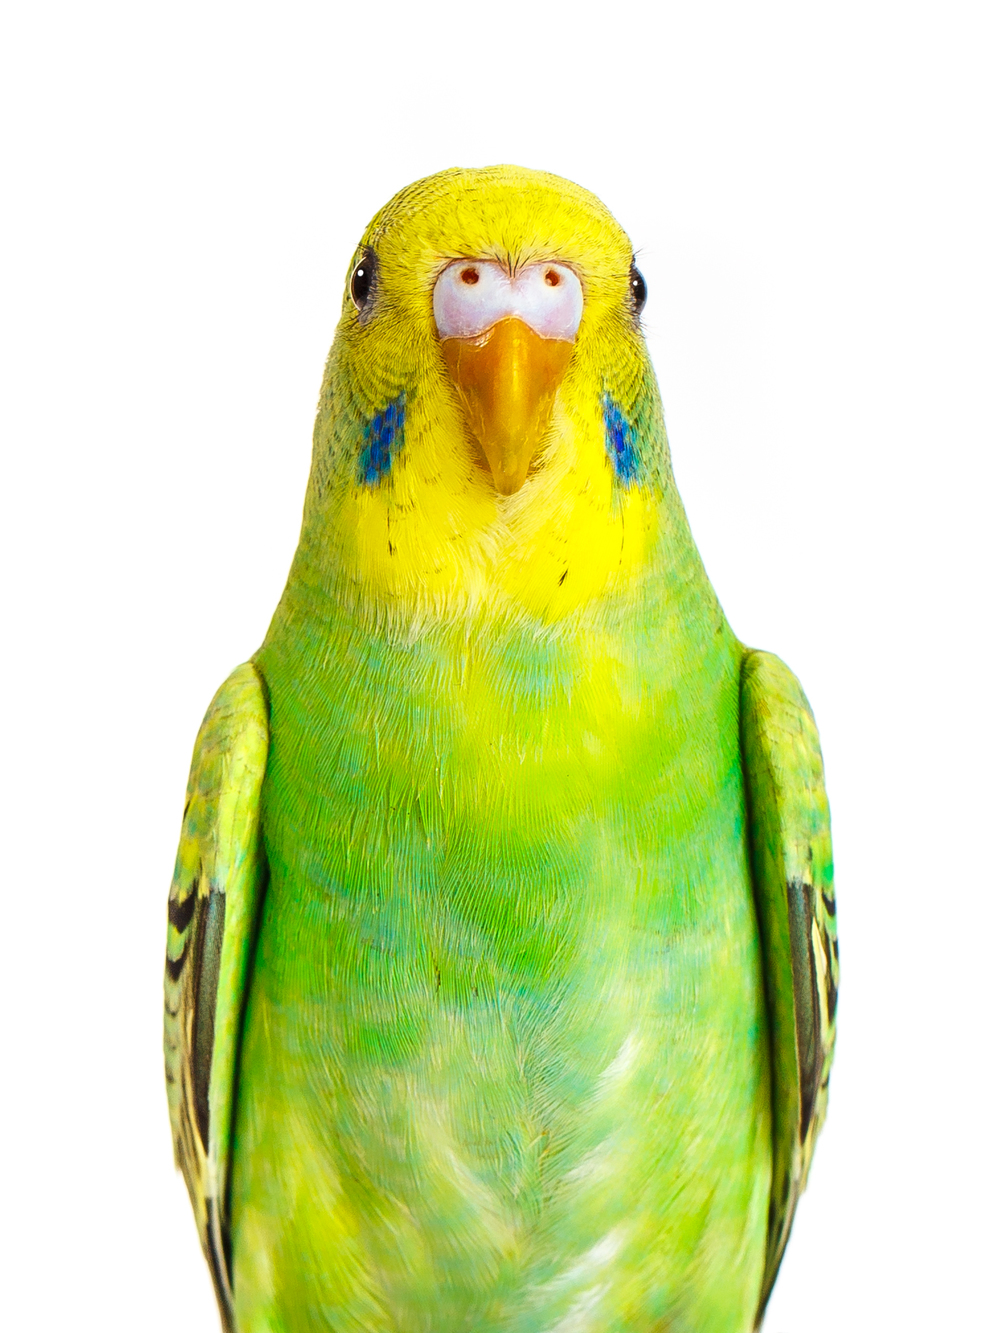 green and yellow parakeet front